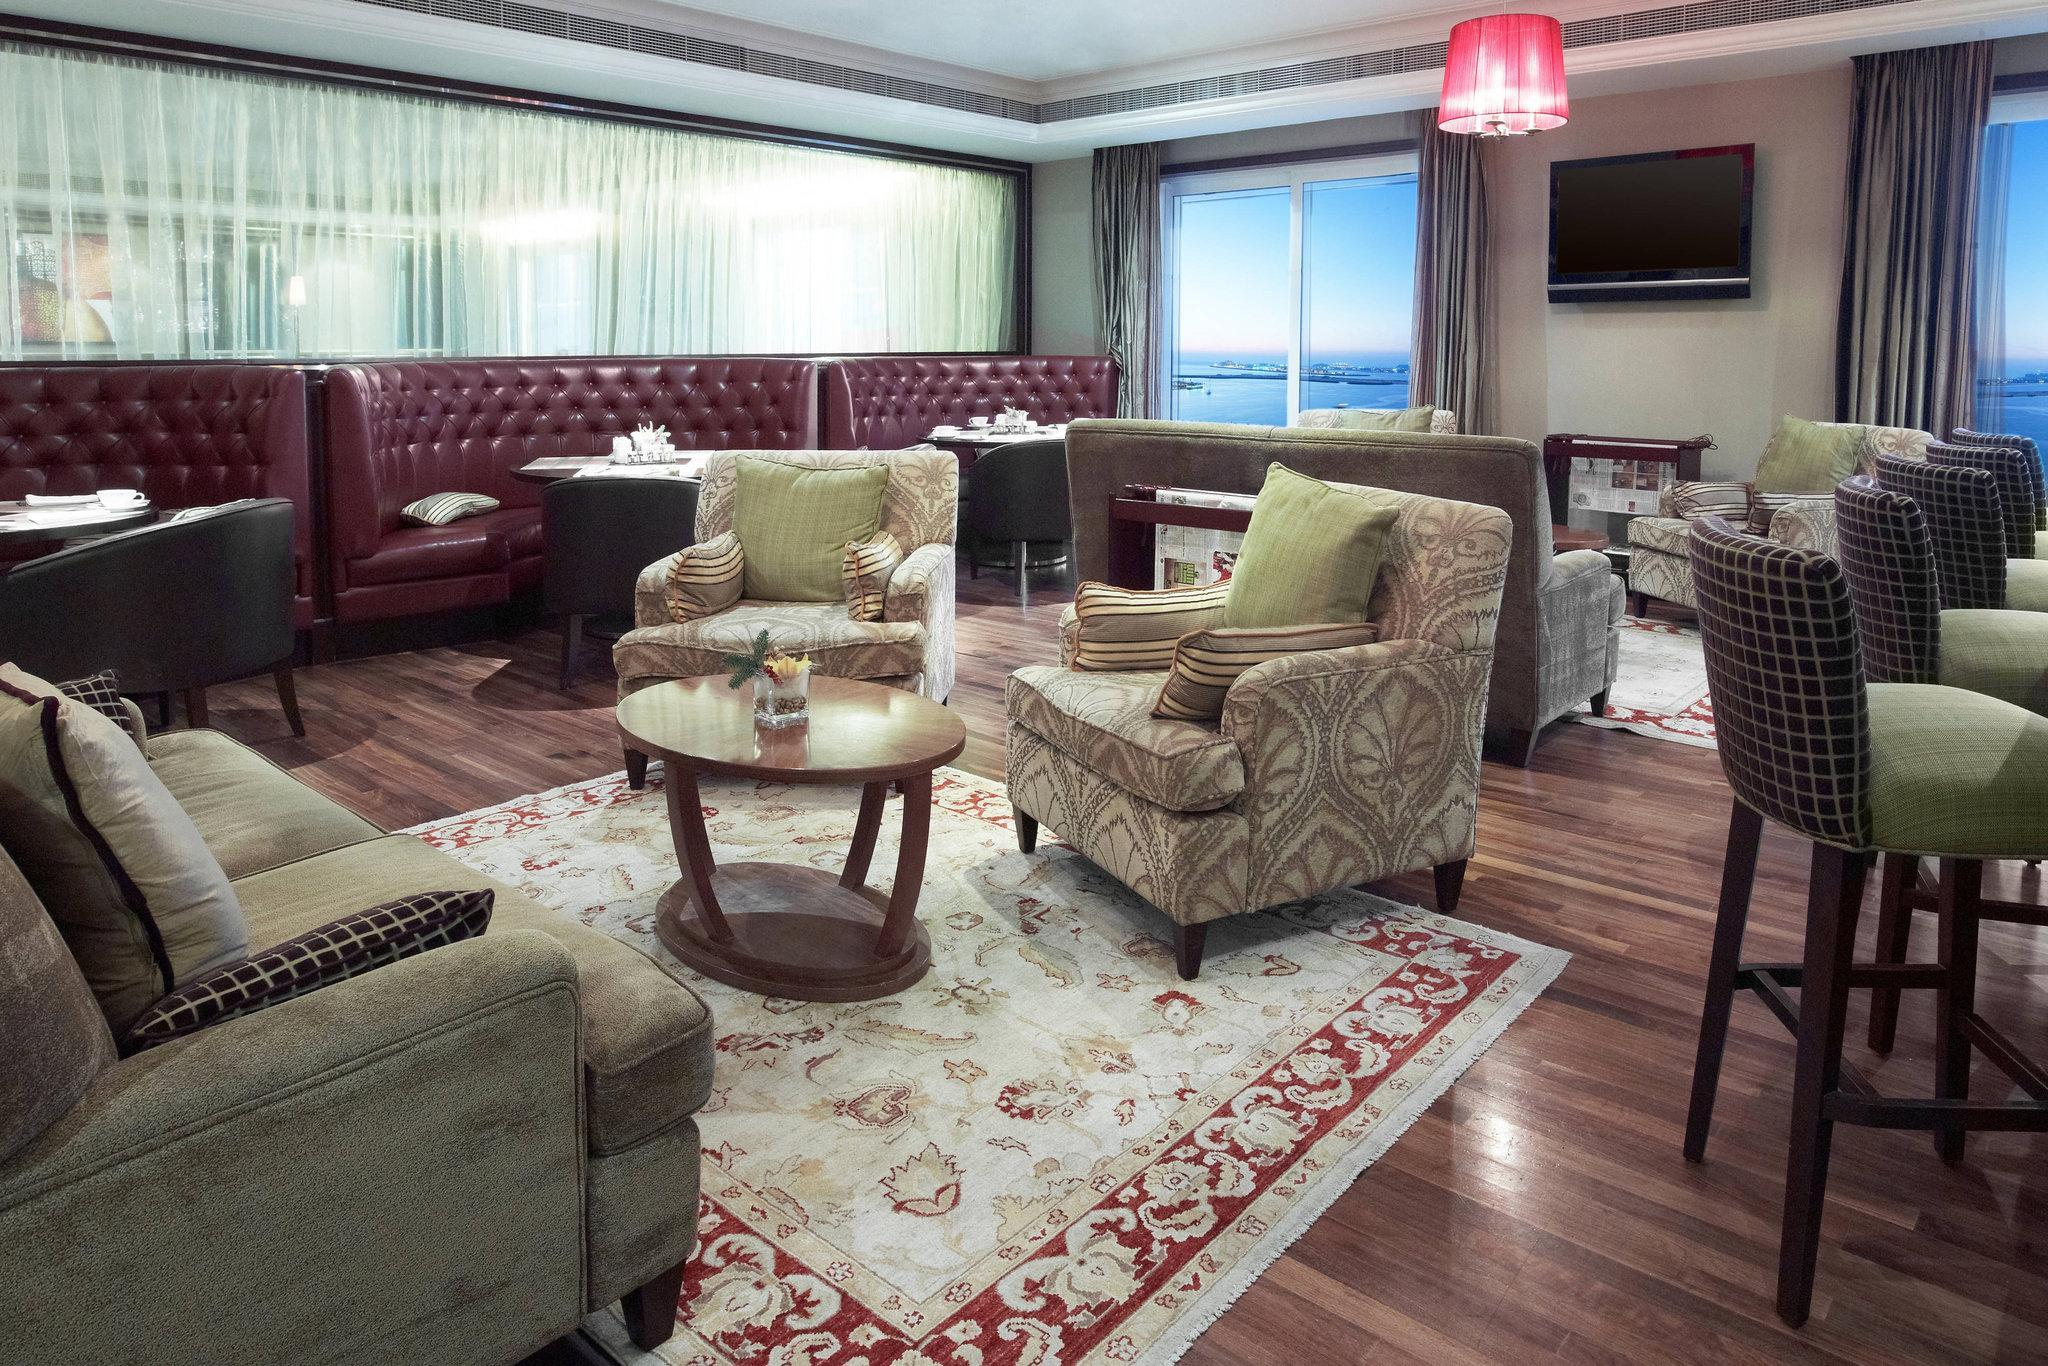 Executive Suite Sea View, Club lounge access, Balcony